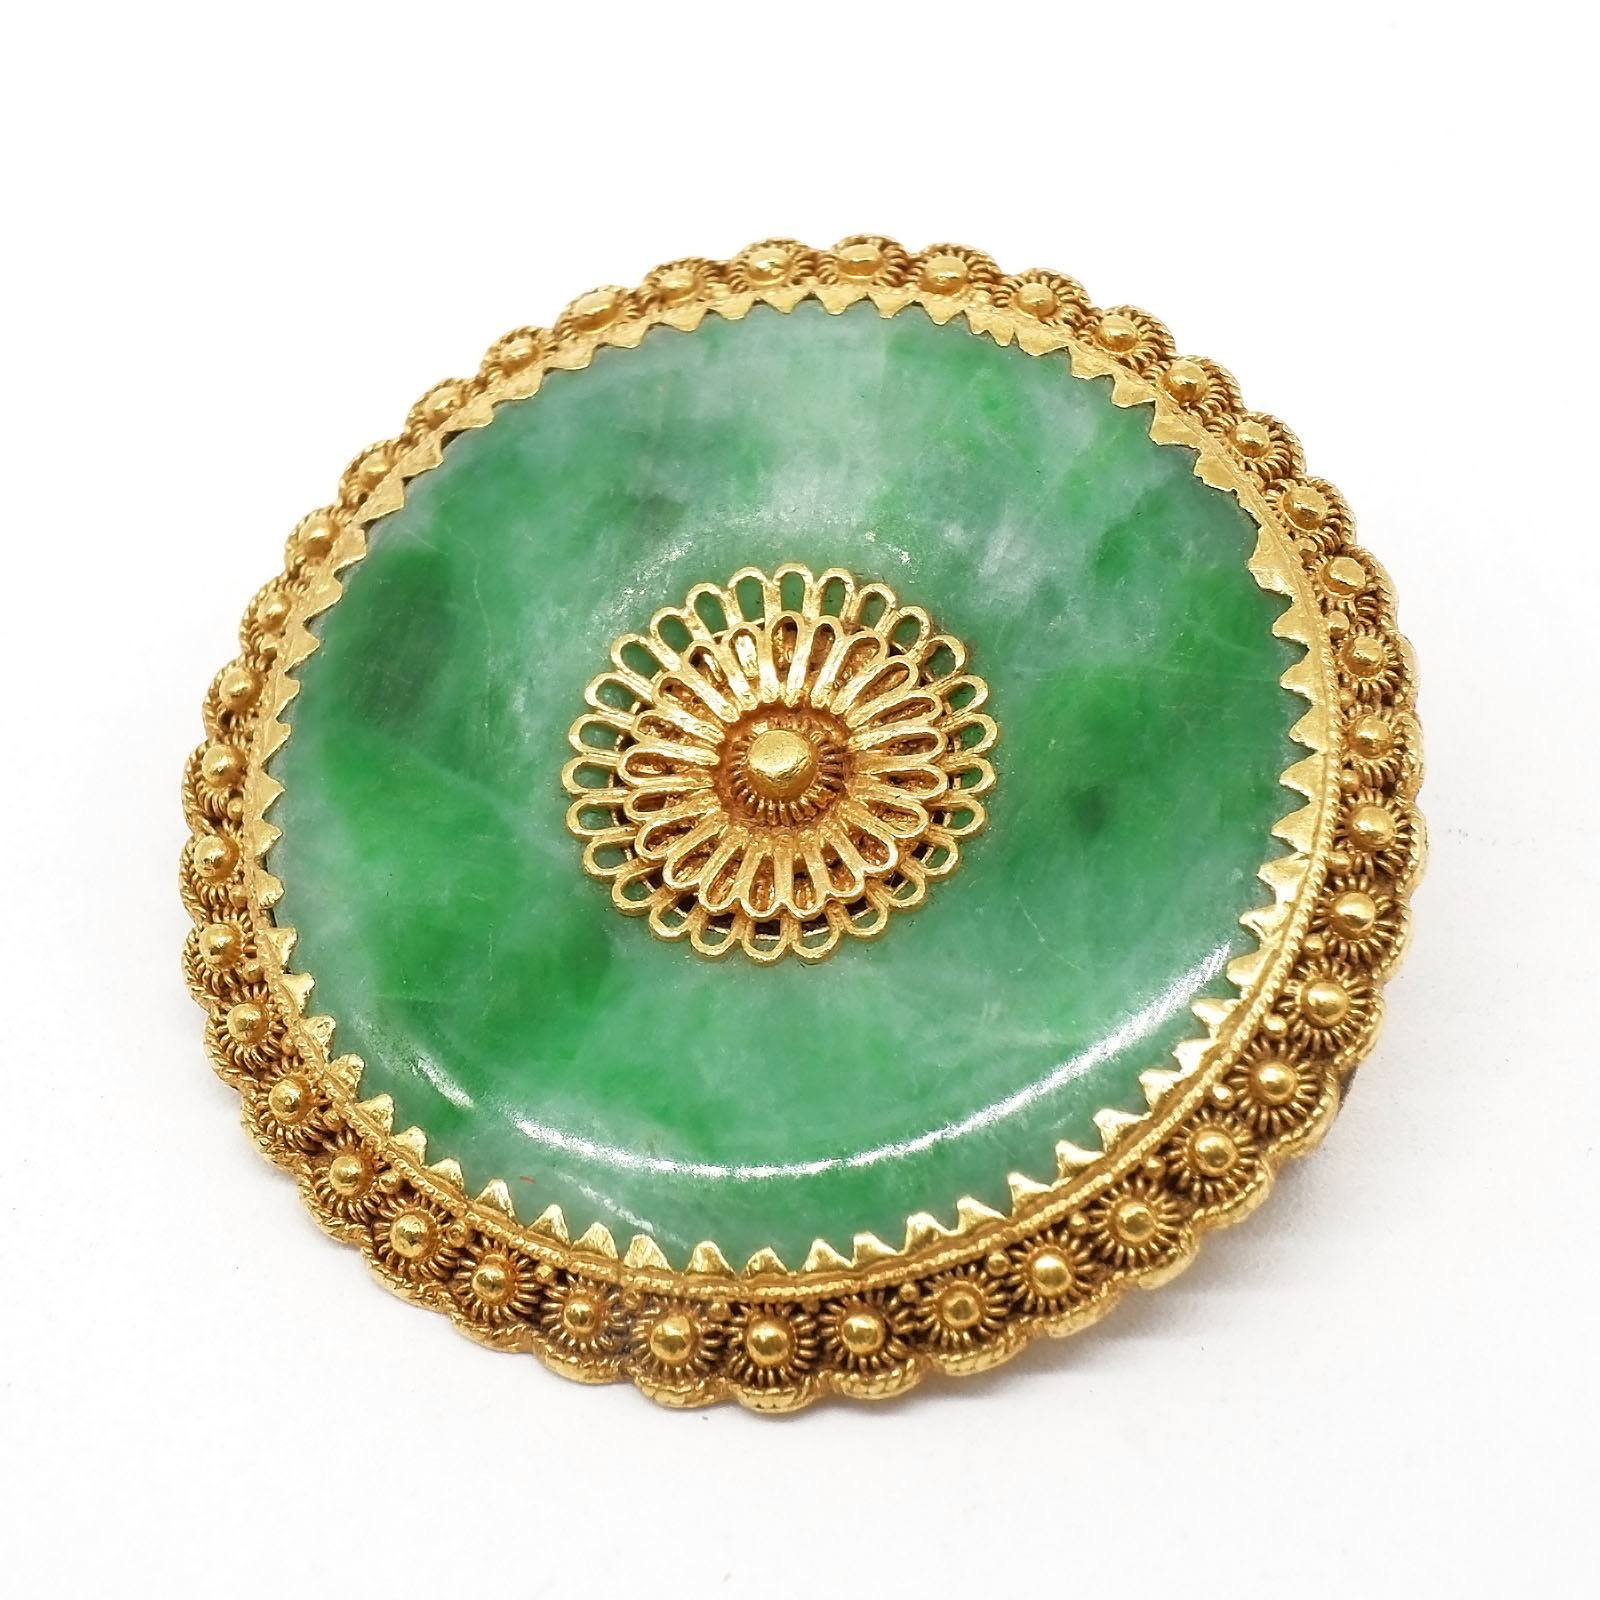 'Chinese 24k Yellow Gold and Apple Green Jadeite Pendant'